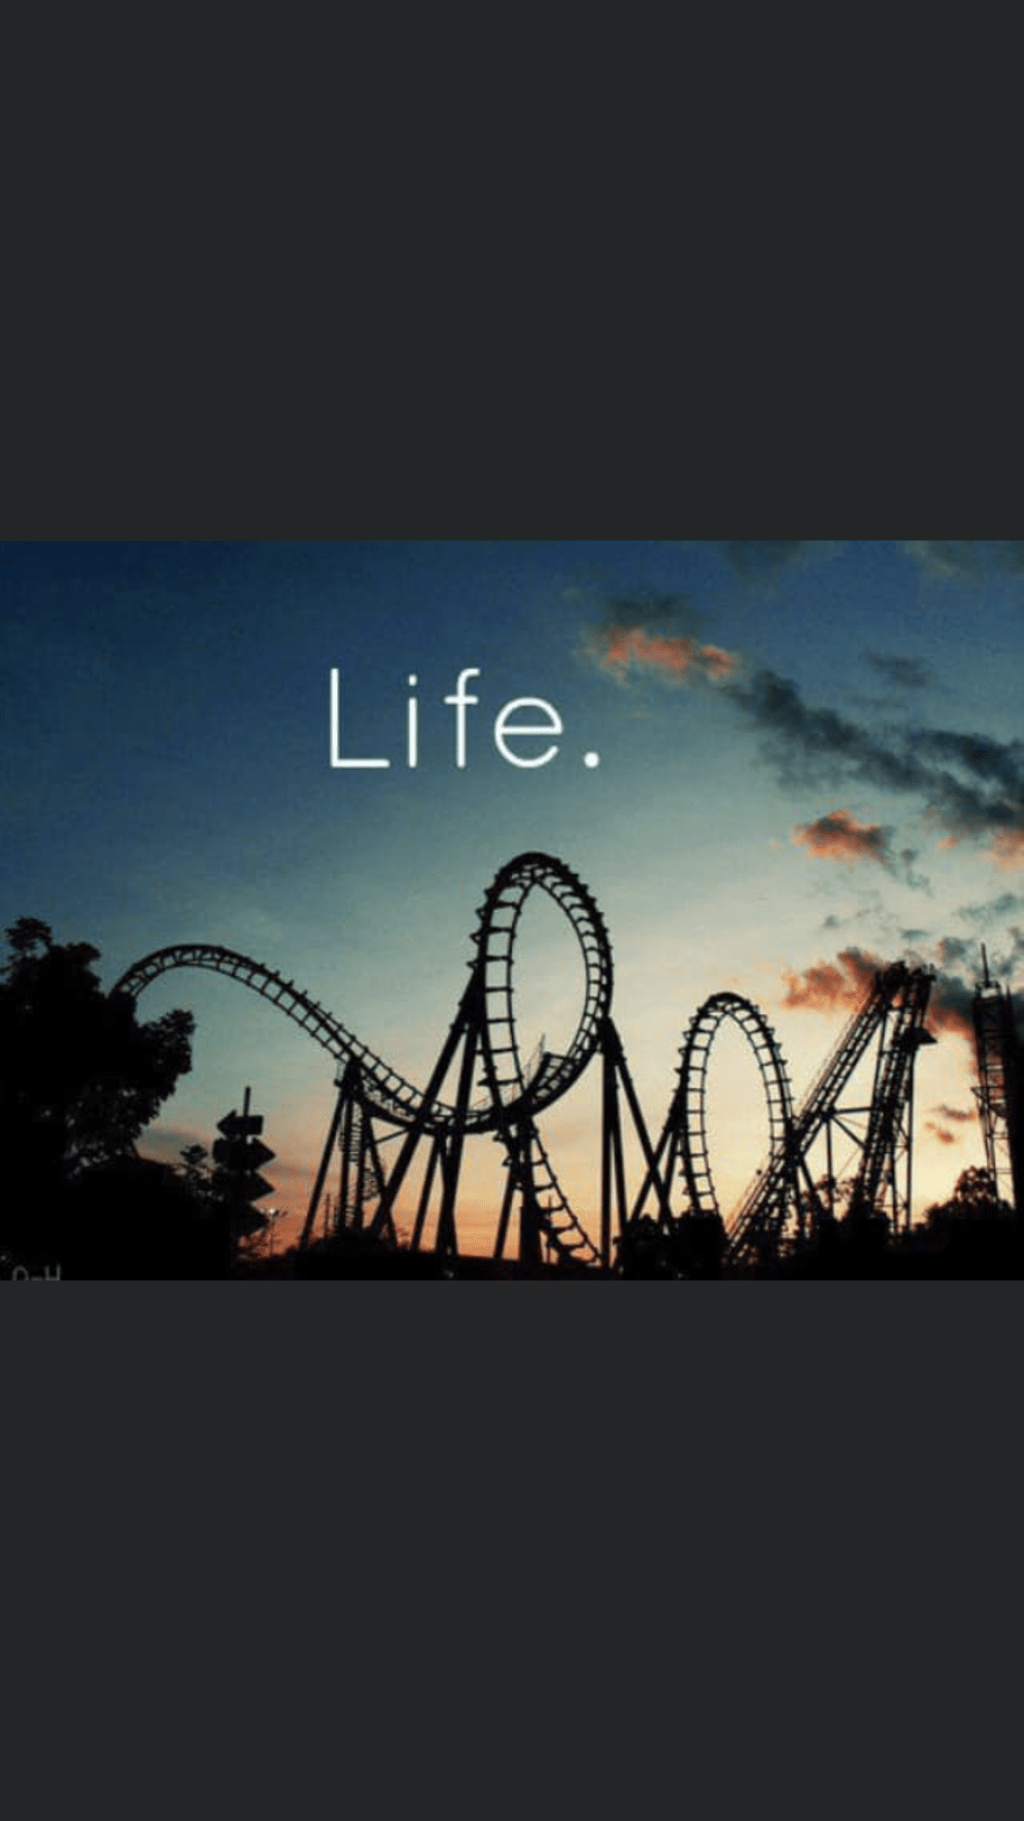 Ride the Rollercoaster